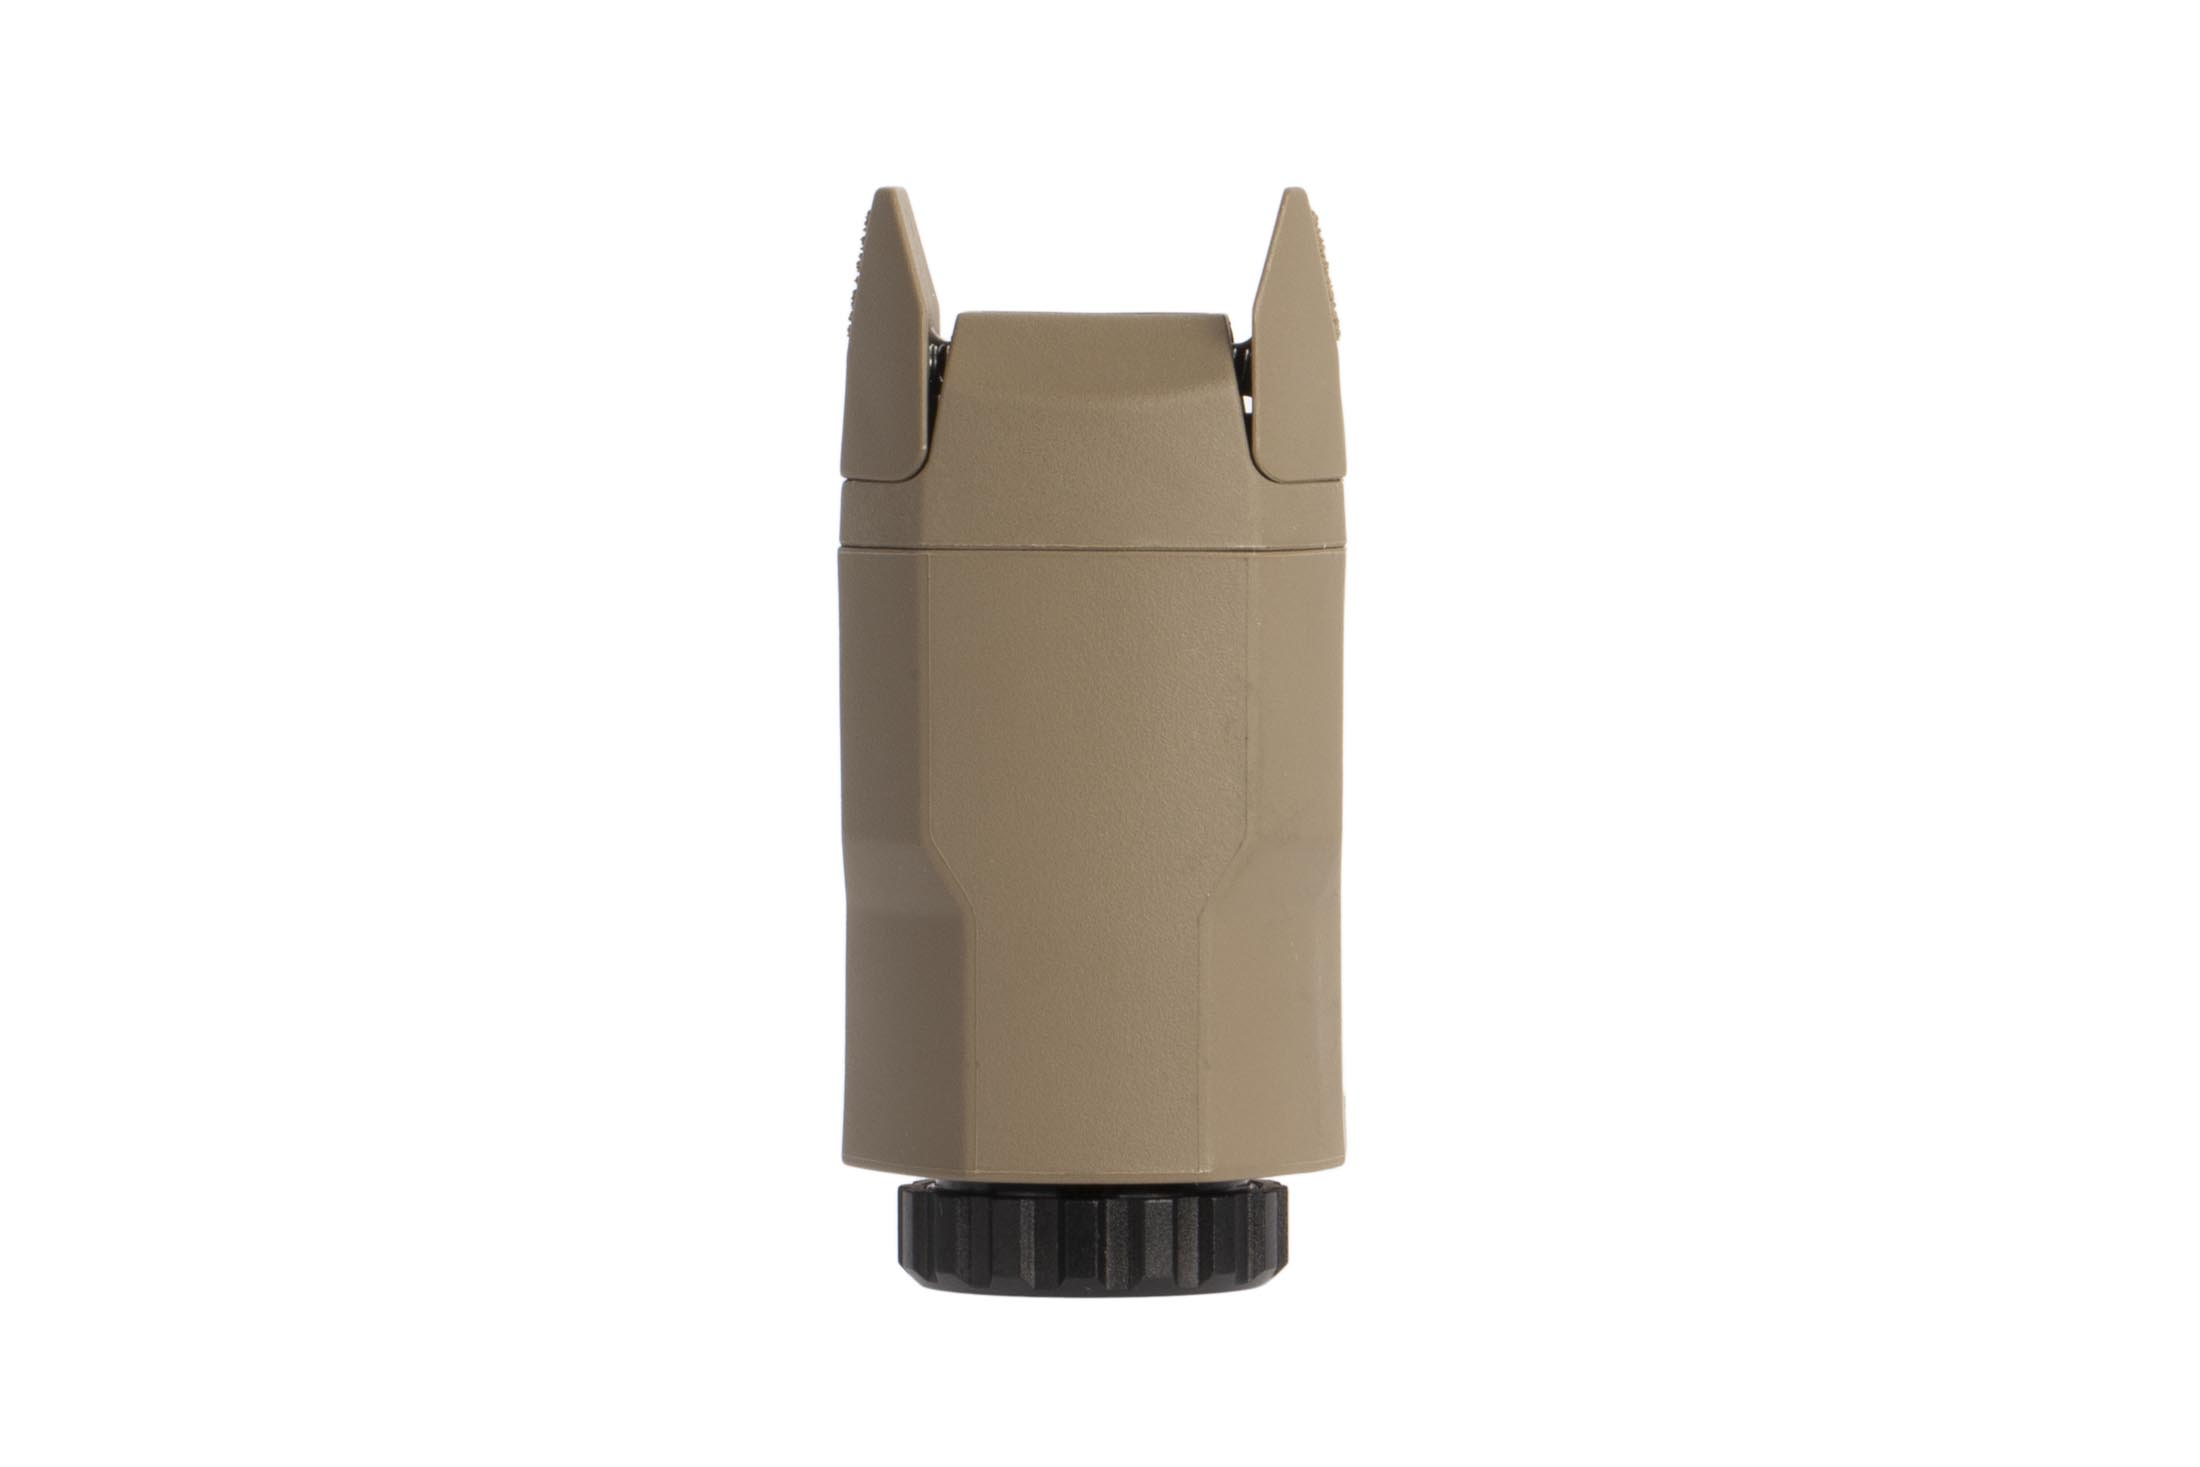 Inforce glock-specific APLc hadngun flash light has dual activation paddles for ambidextrous use and an FDE body